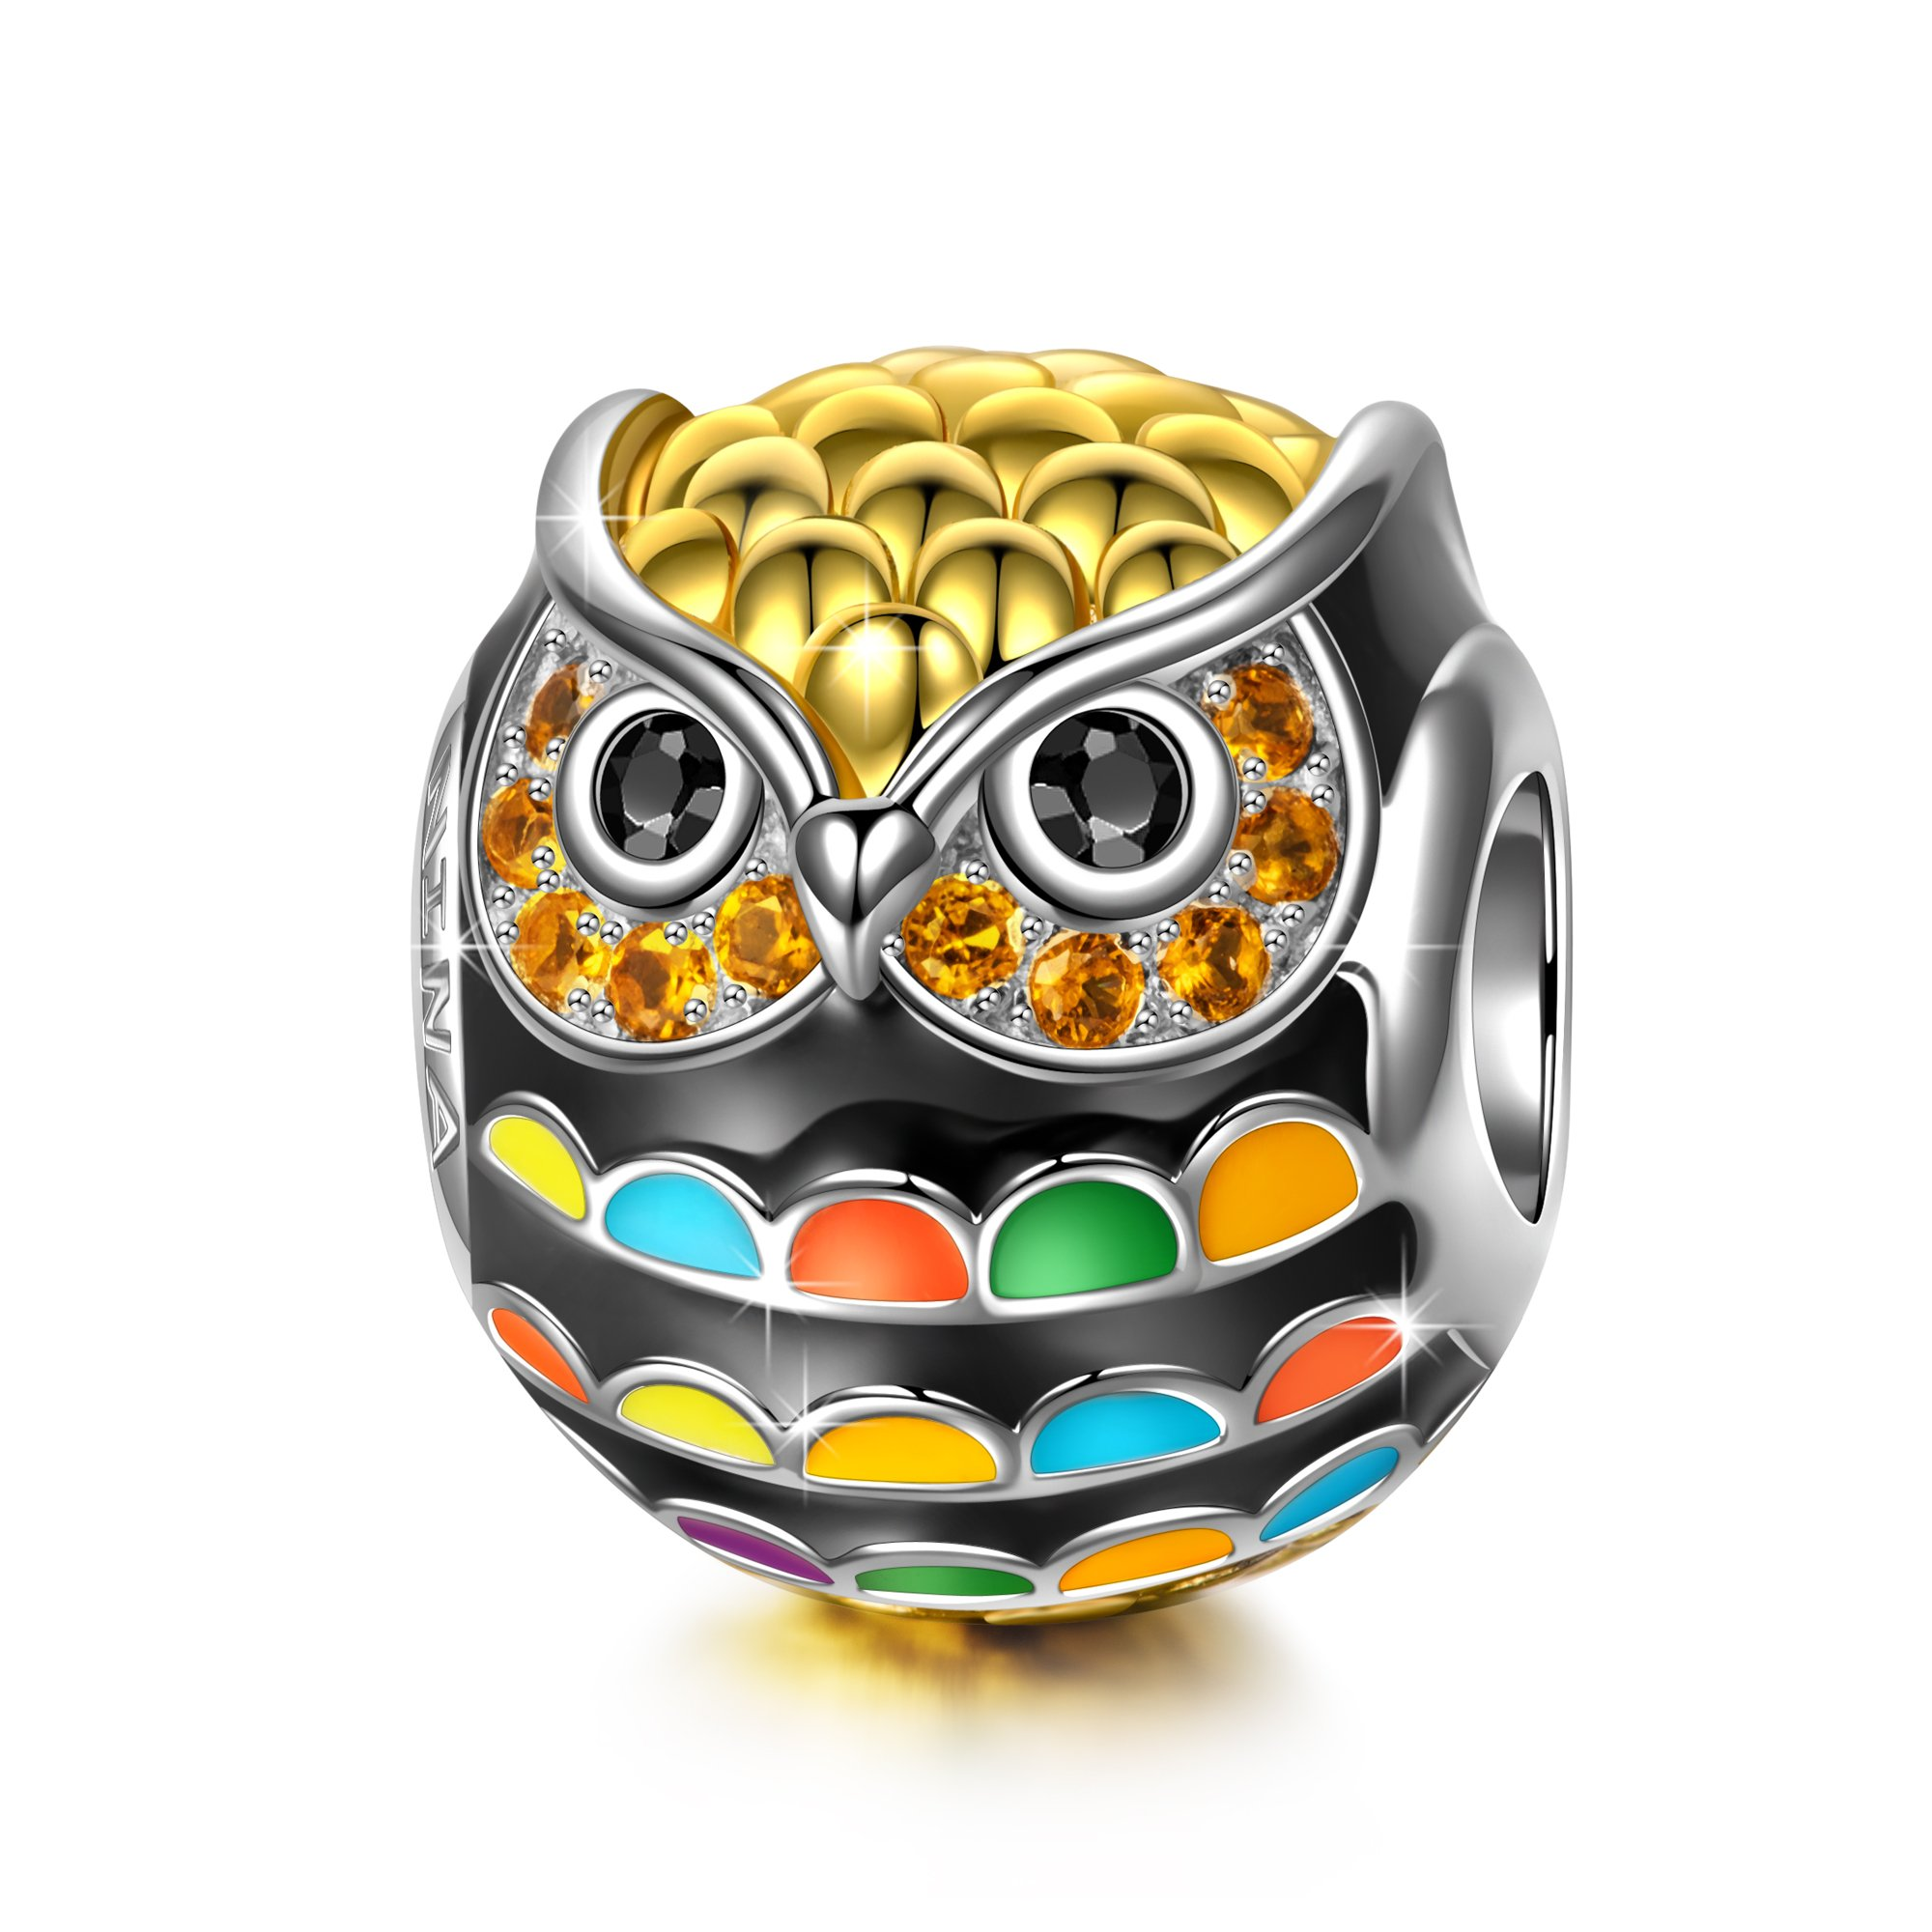 NinaQueen 925 Sterling Silver Pandöra Charms Owl Beads Gold Plated Multicolor Enamel Charm for Pandöra Bracelets Birthday Valentines Day Anniversary Jewelry Gifts for Teen Sisters Daughter by NINAQUEEN